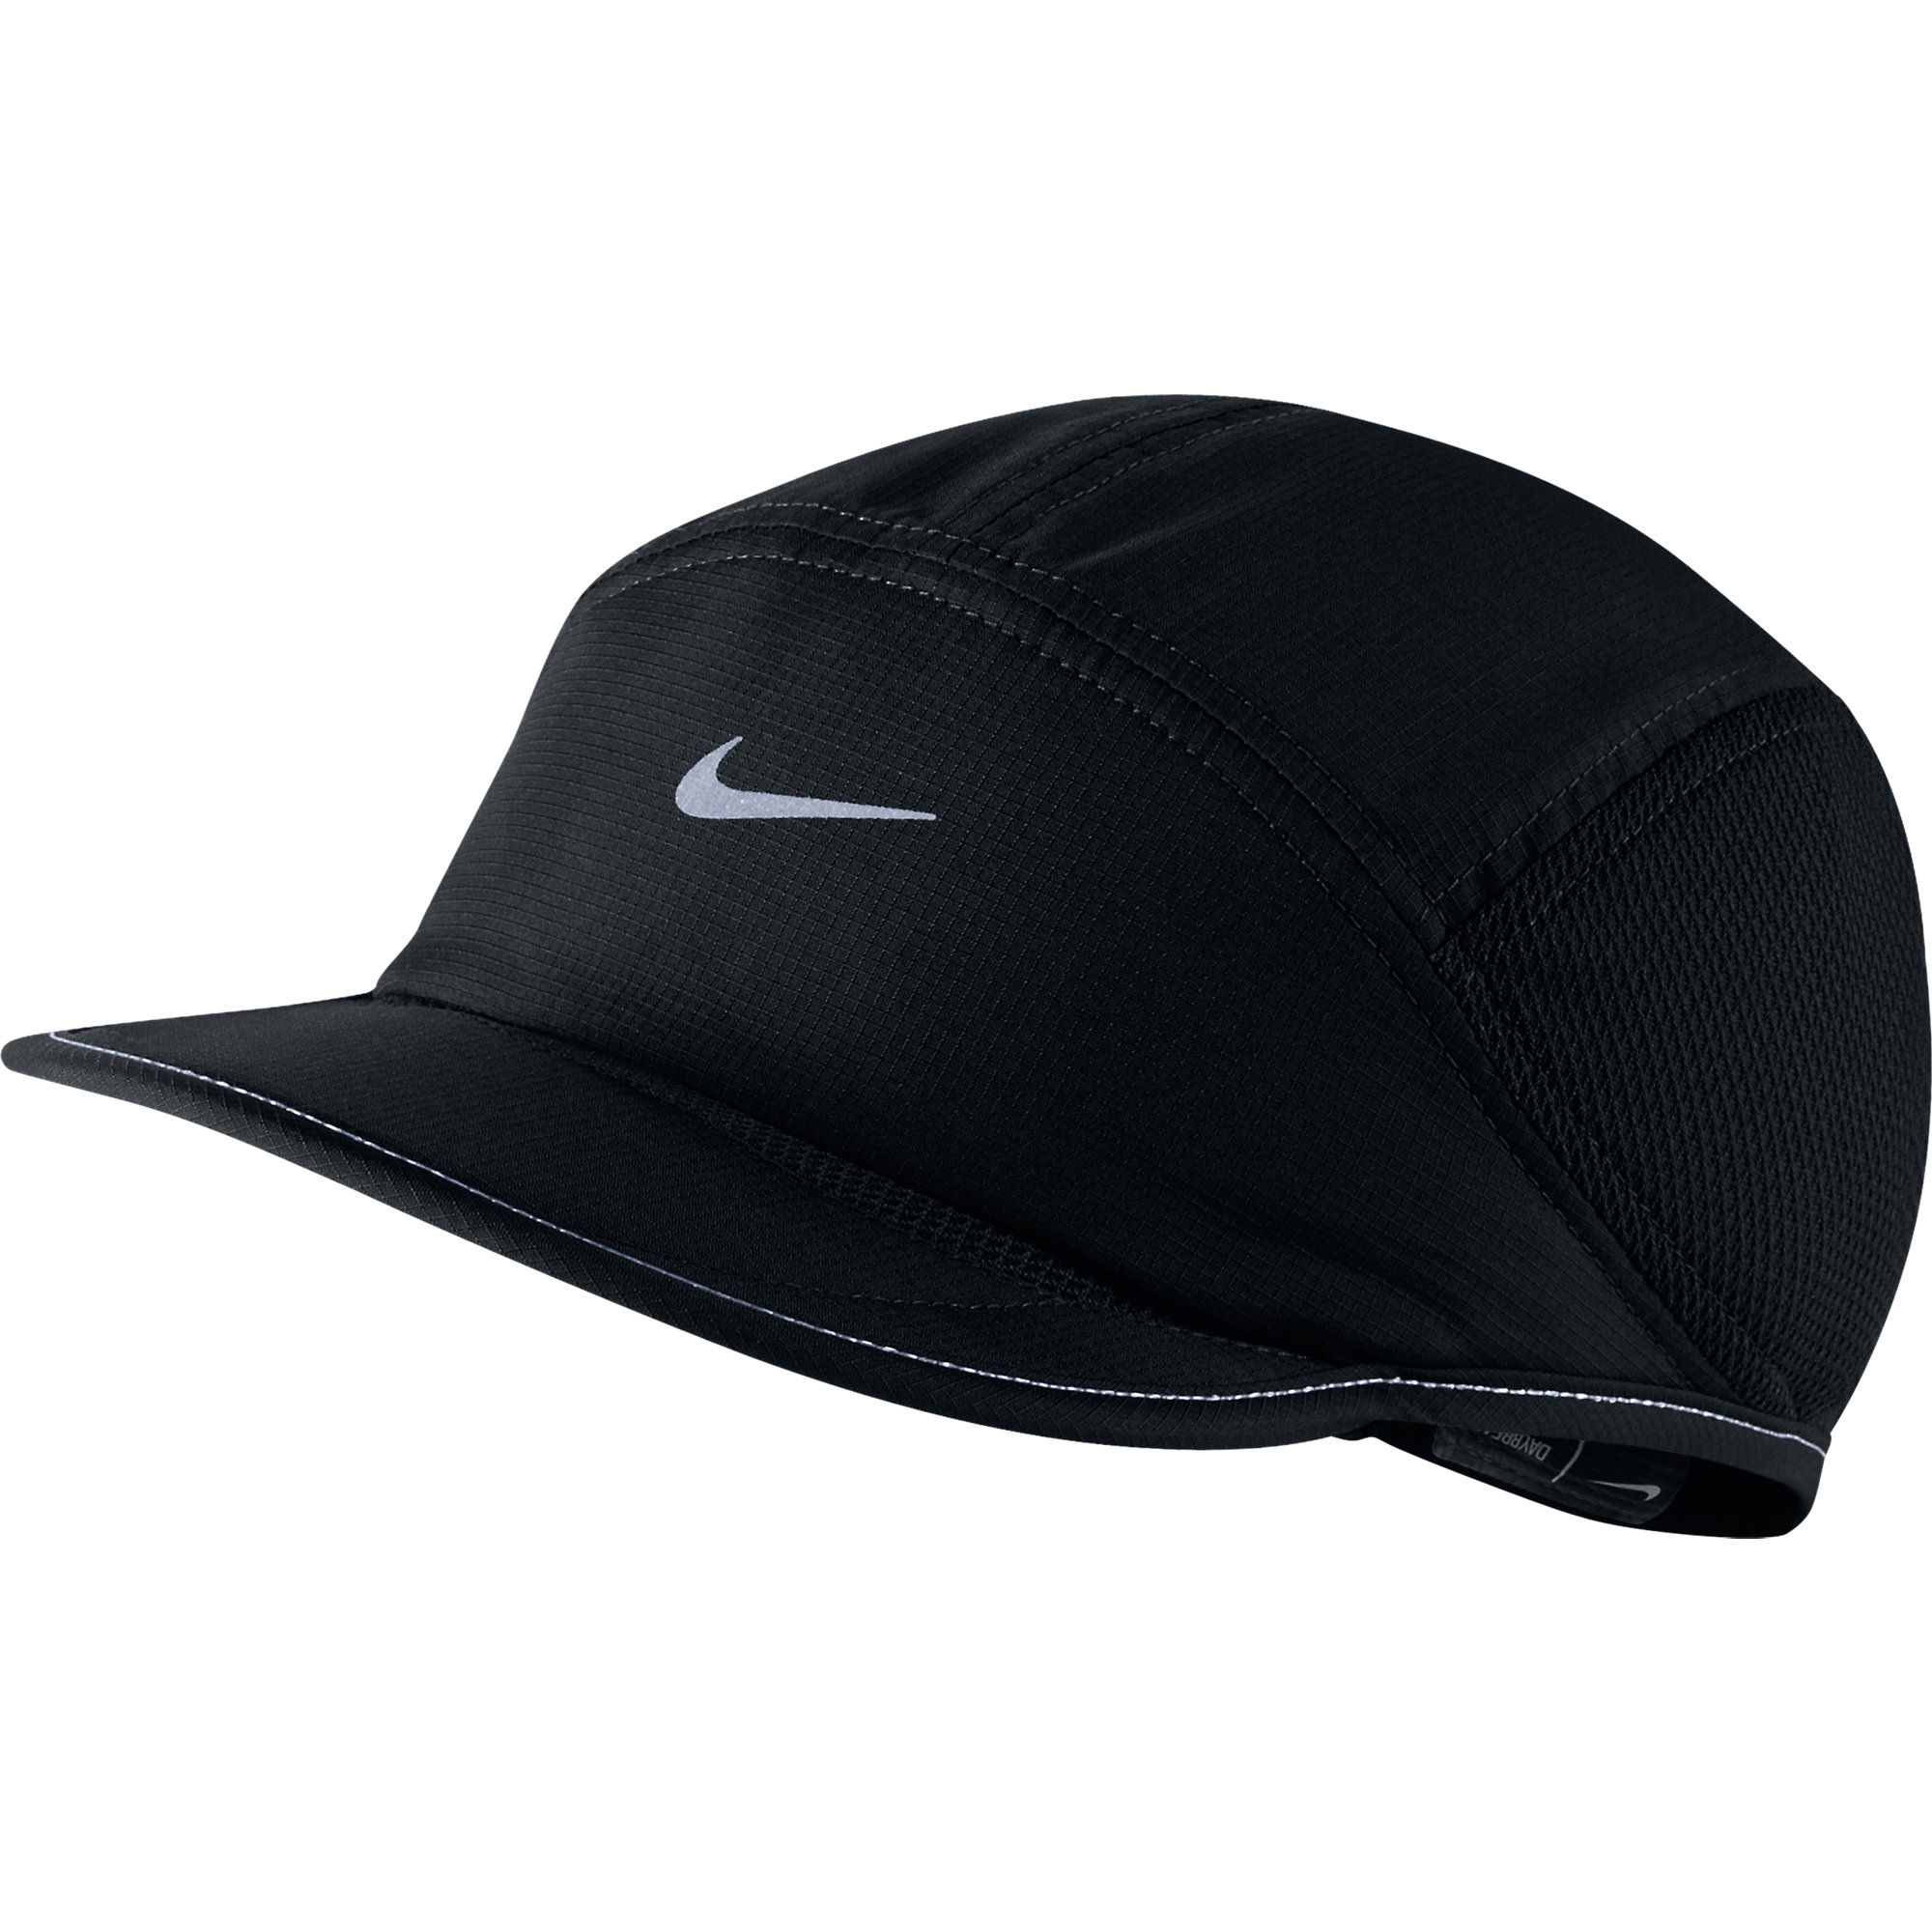 casquettes de running bonnets et autres nike ladies wind stopper daybreak cap aw12. Black Bedroom Furniture Sets. Home Design Ideas